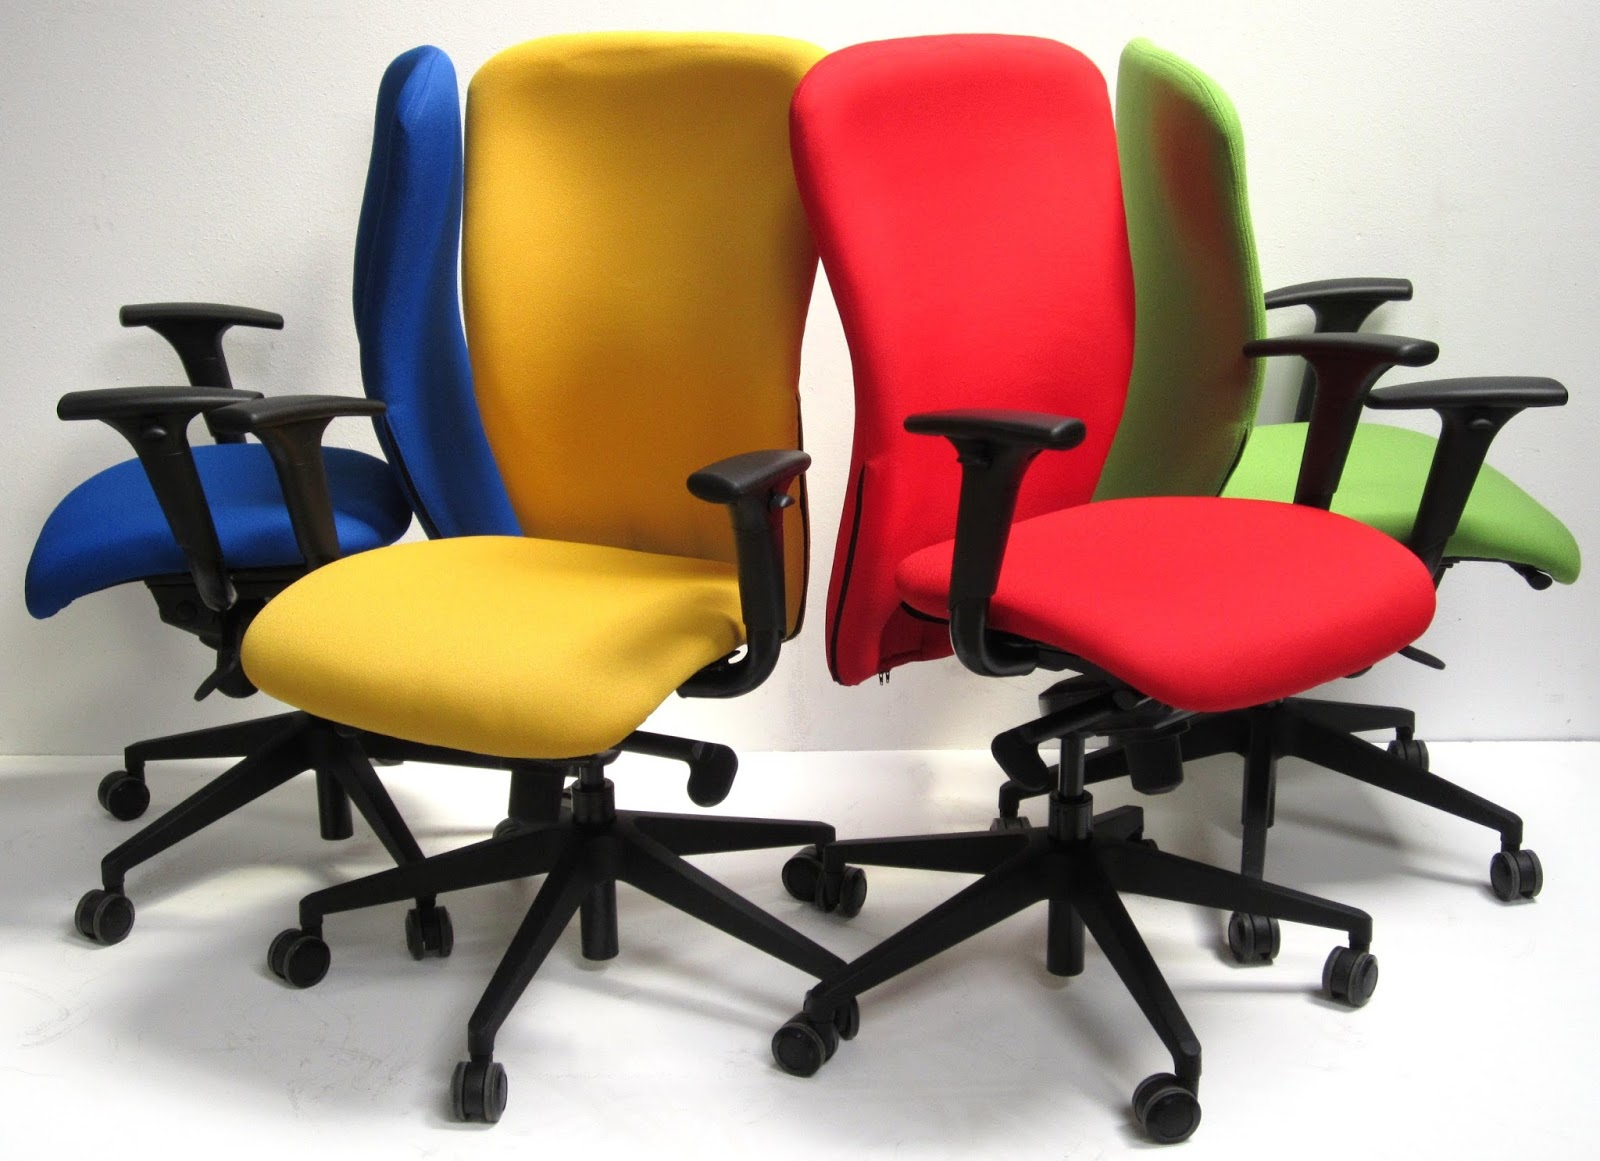 Adward Miller 39 S Blog How To Choose Office Furniture For